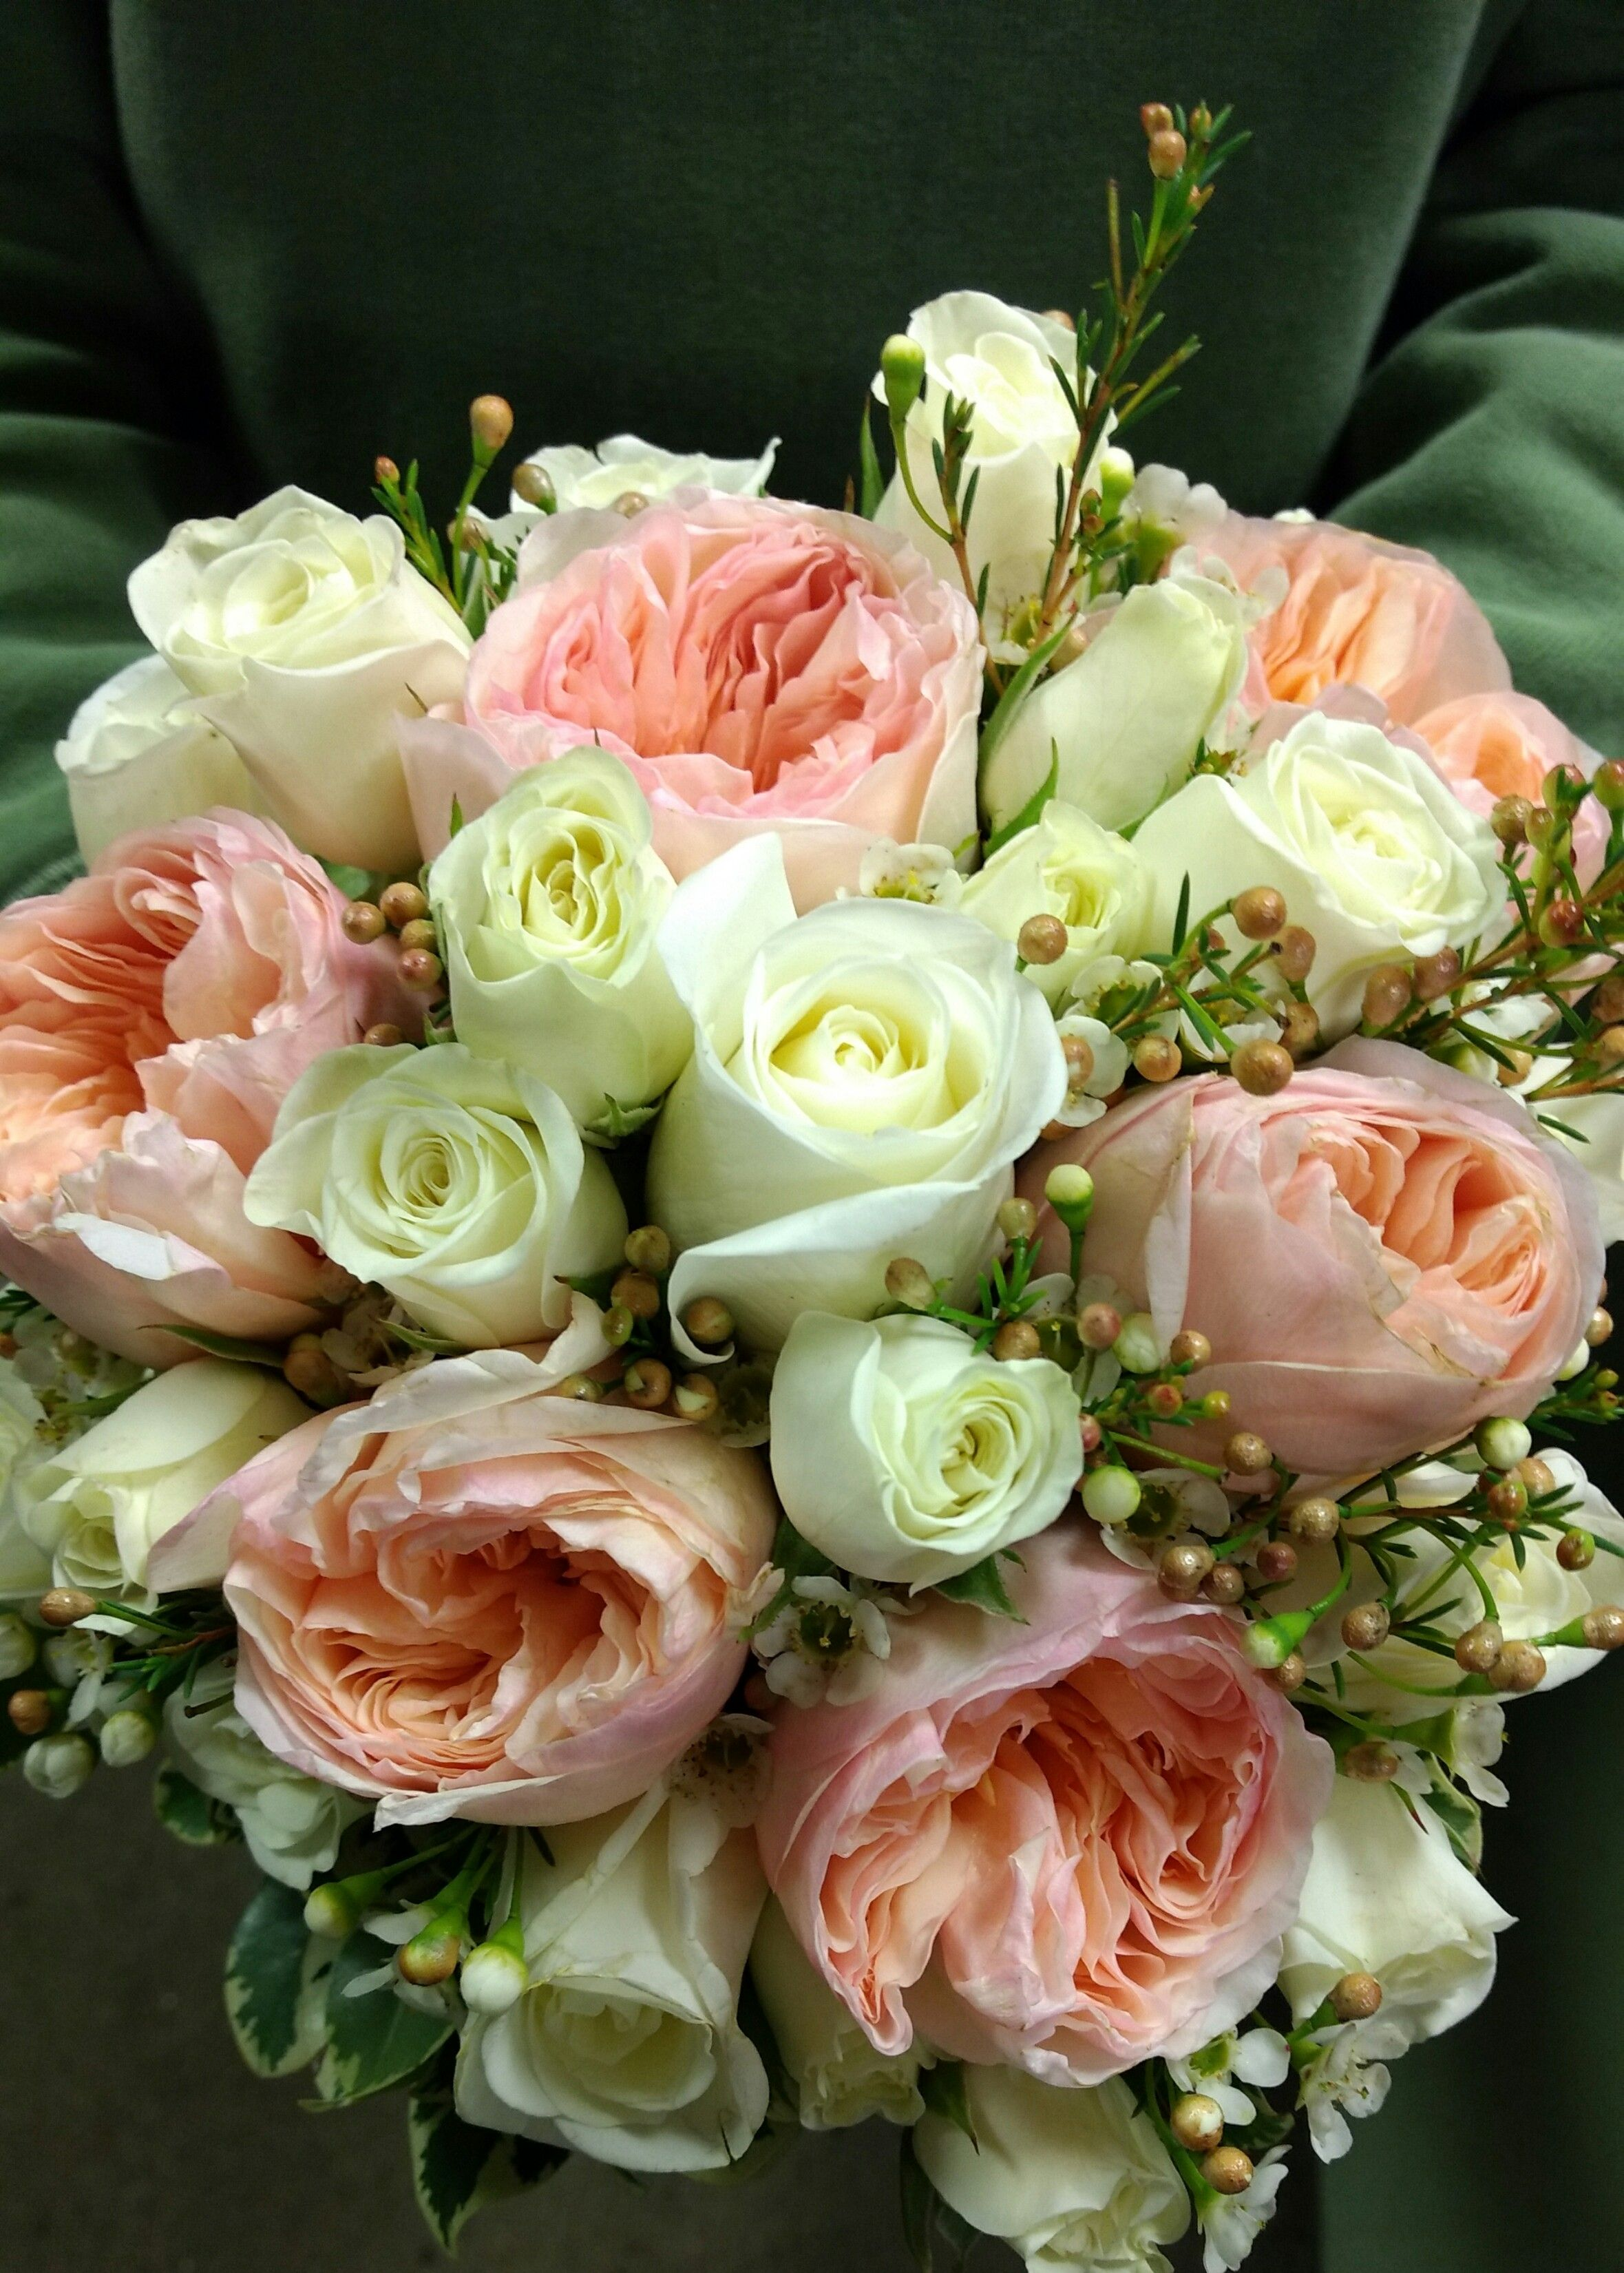 Peach and white all rose bouquet Wedding flowers, Fresh